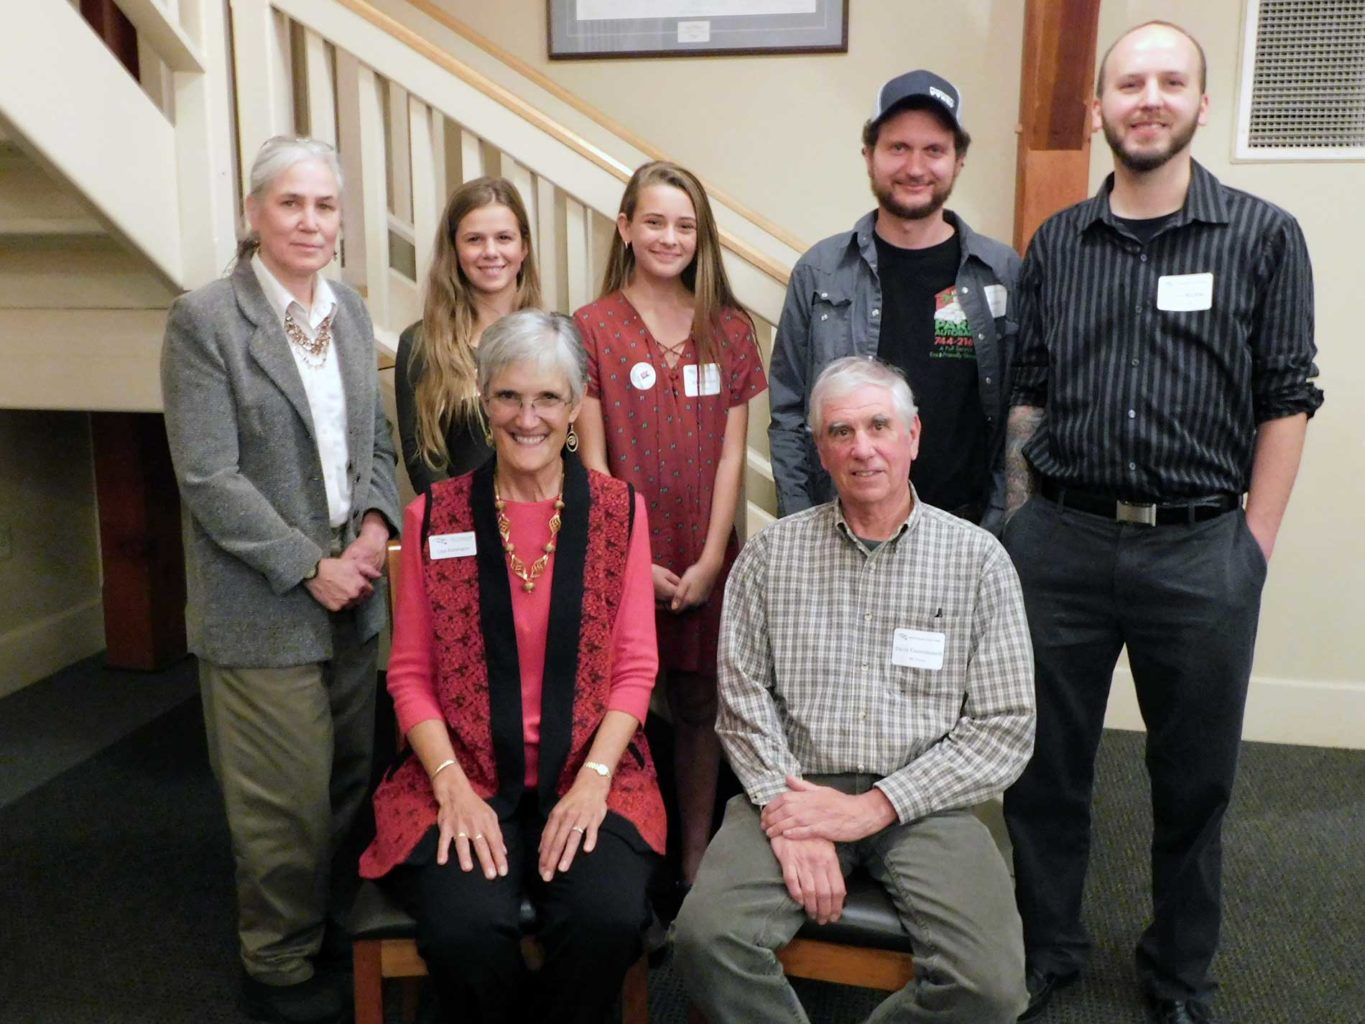 NRCM's 2017 Conservation Leadership Award winners with Lisa Pohlmann (L to R): Martha Spiess, Lainey Randall, Addie Farmer, David Courtemanch (seated), Tony Giambro, and Travis Ritchie